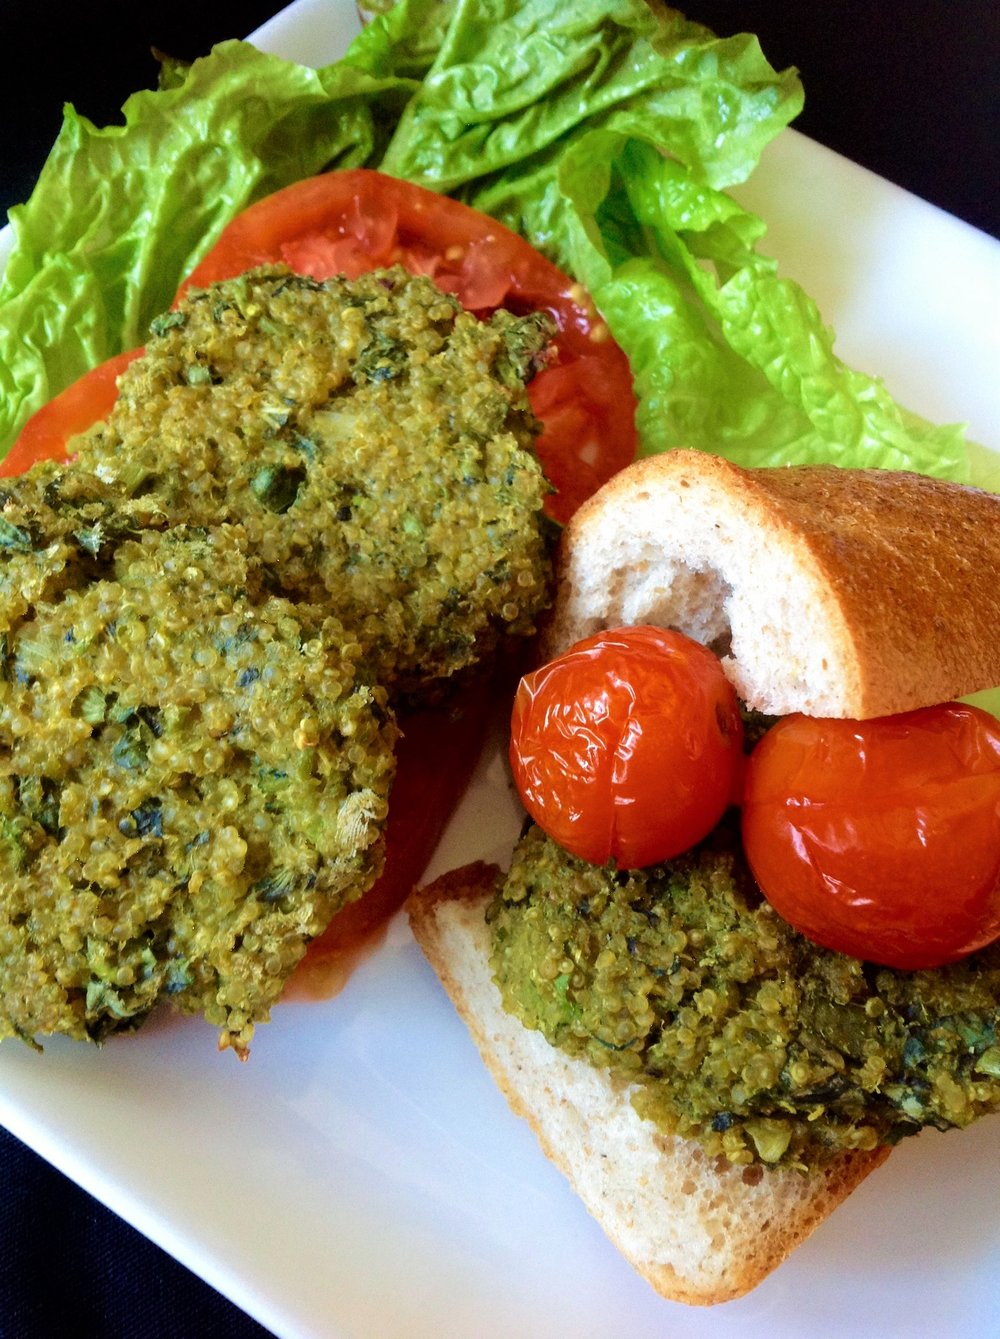 Super Green Quinoa Vegan Sliders - Healthy, Gluten-Free, Oil-Free, Plant-Based Veggie Burger Recipe